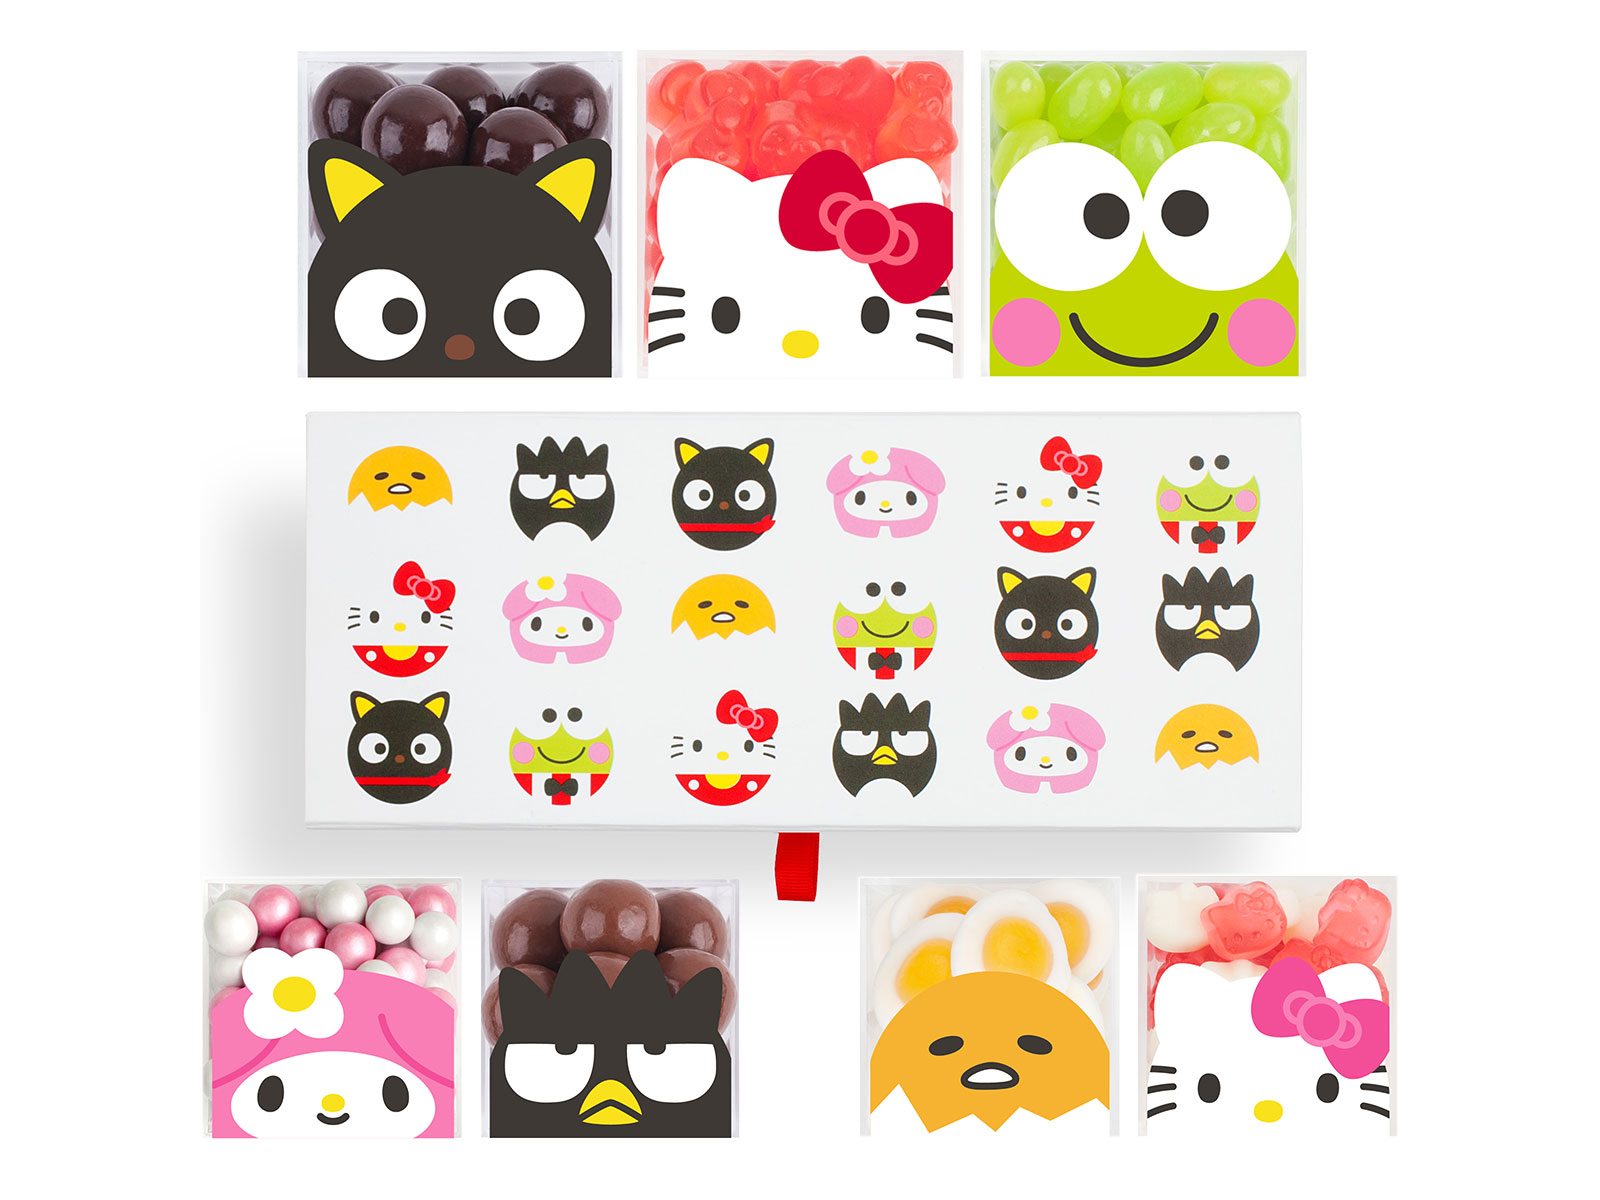 Sugarfinaso Kitty Gummies Are Apple Pie And Strawberry Flavored